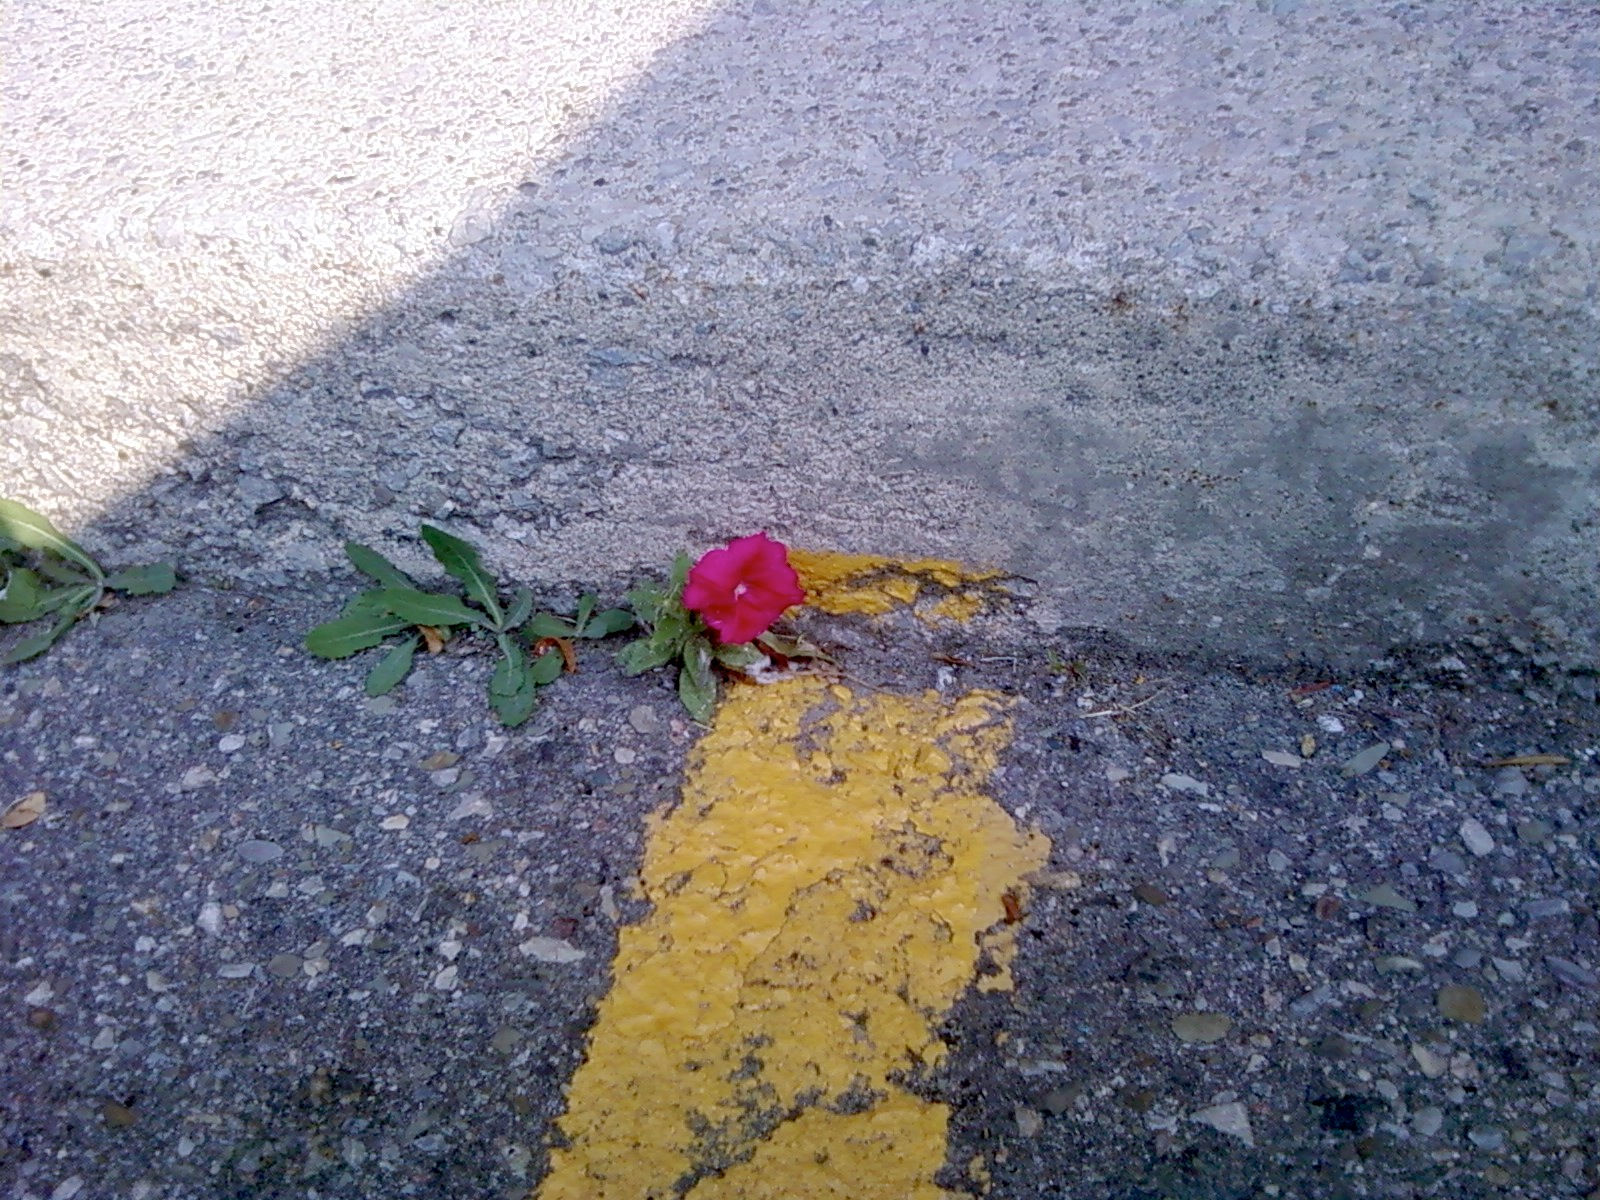 The Oak and the Rose: Grow Up, But Don't Look Down | What